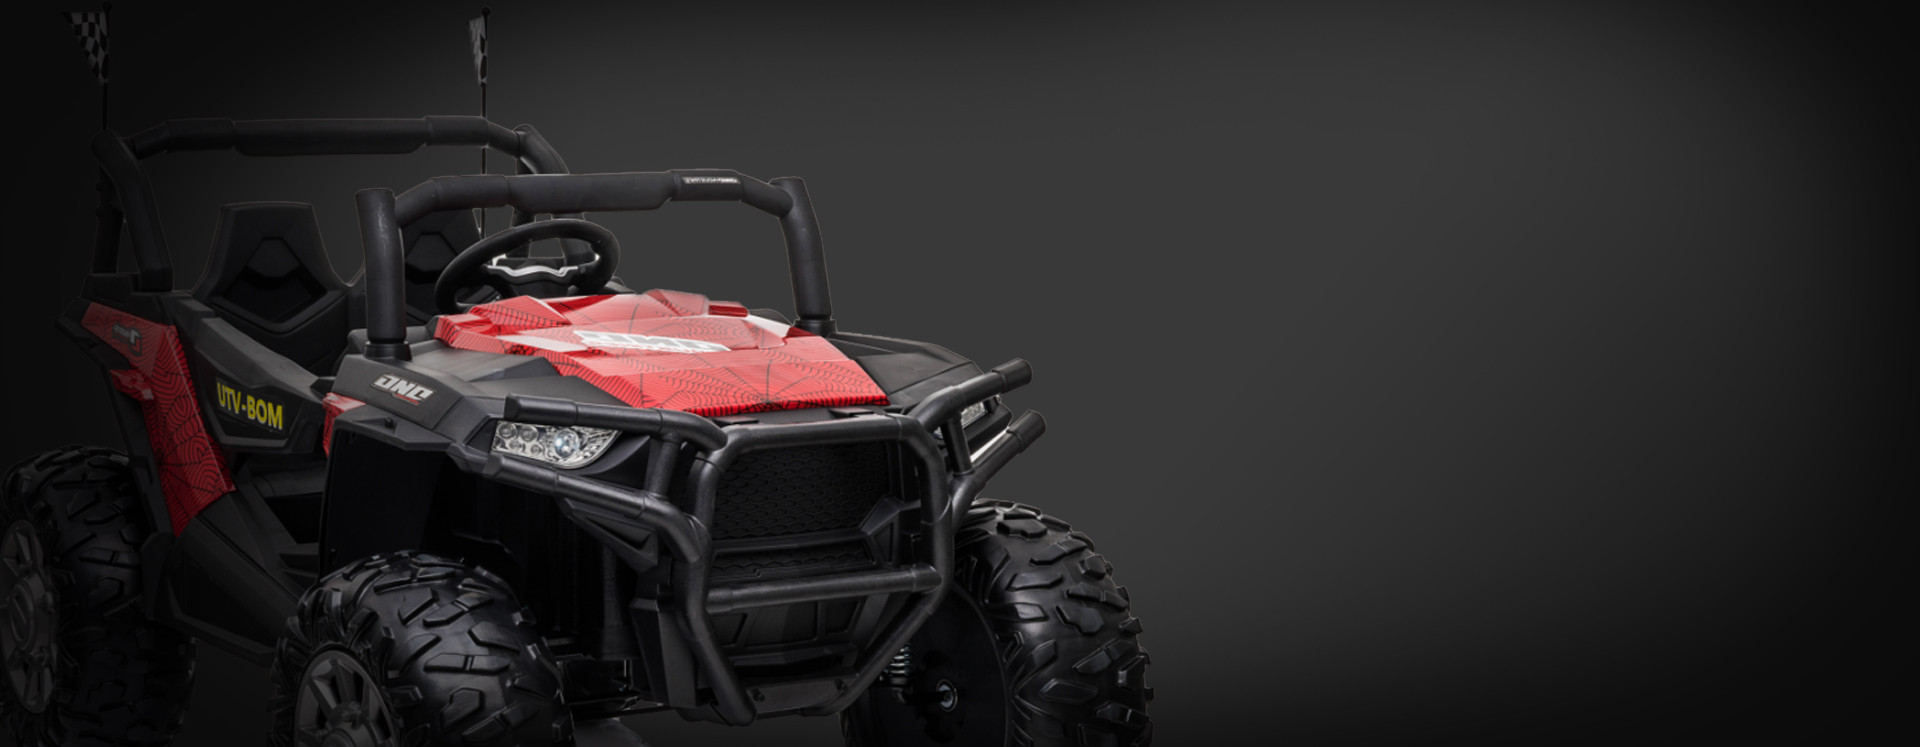 Xtreme BIG 24v Ride on Buggy Off Road UTV Jeep Painted Spider Red